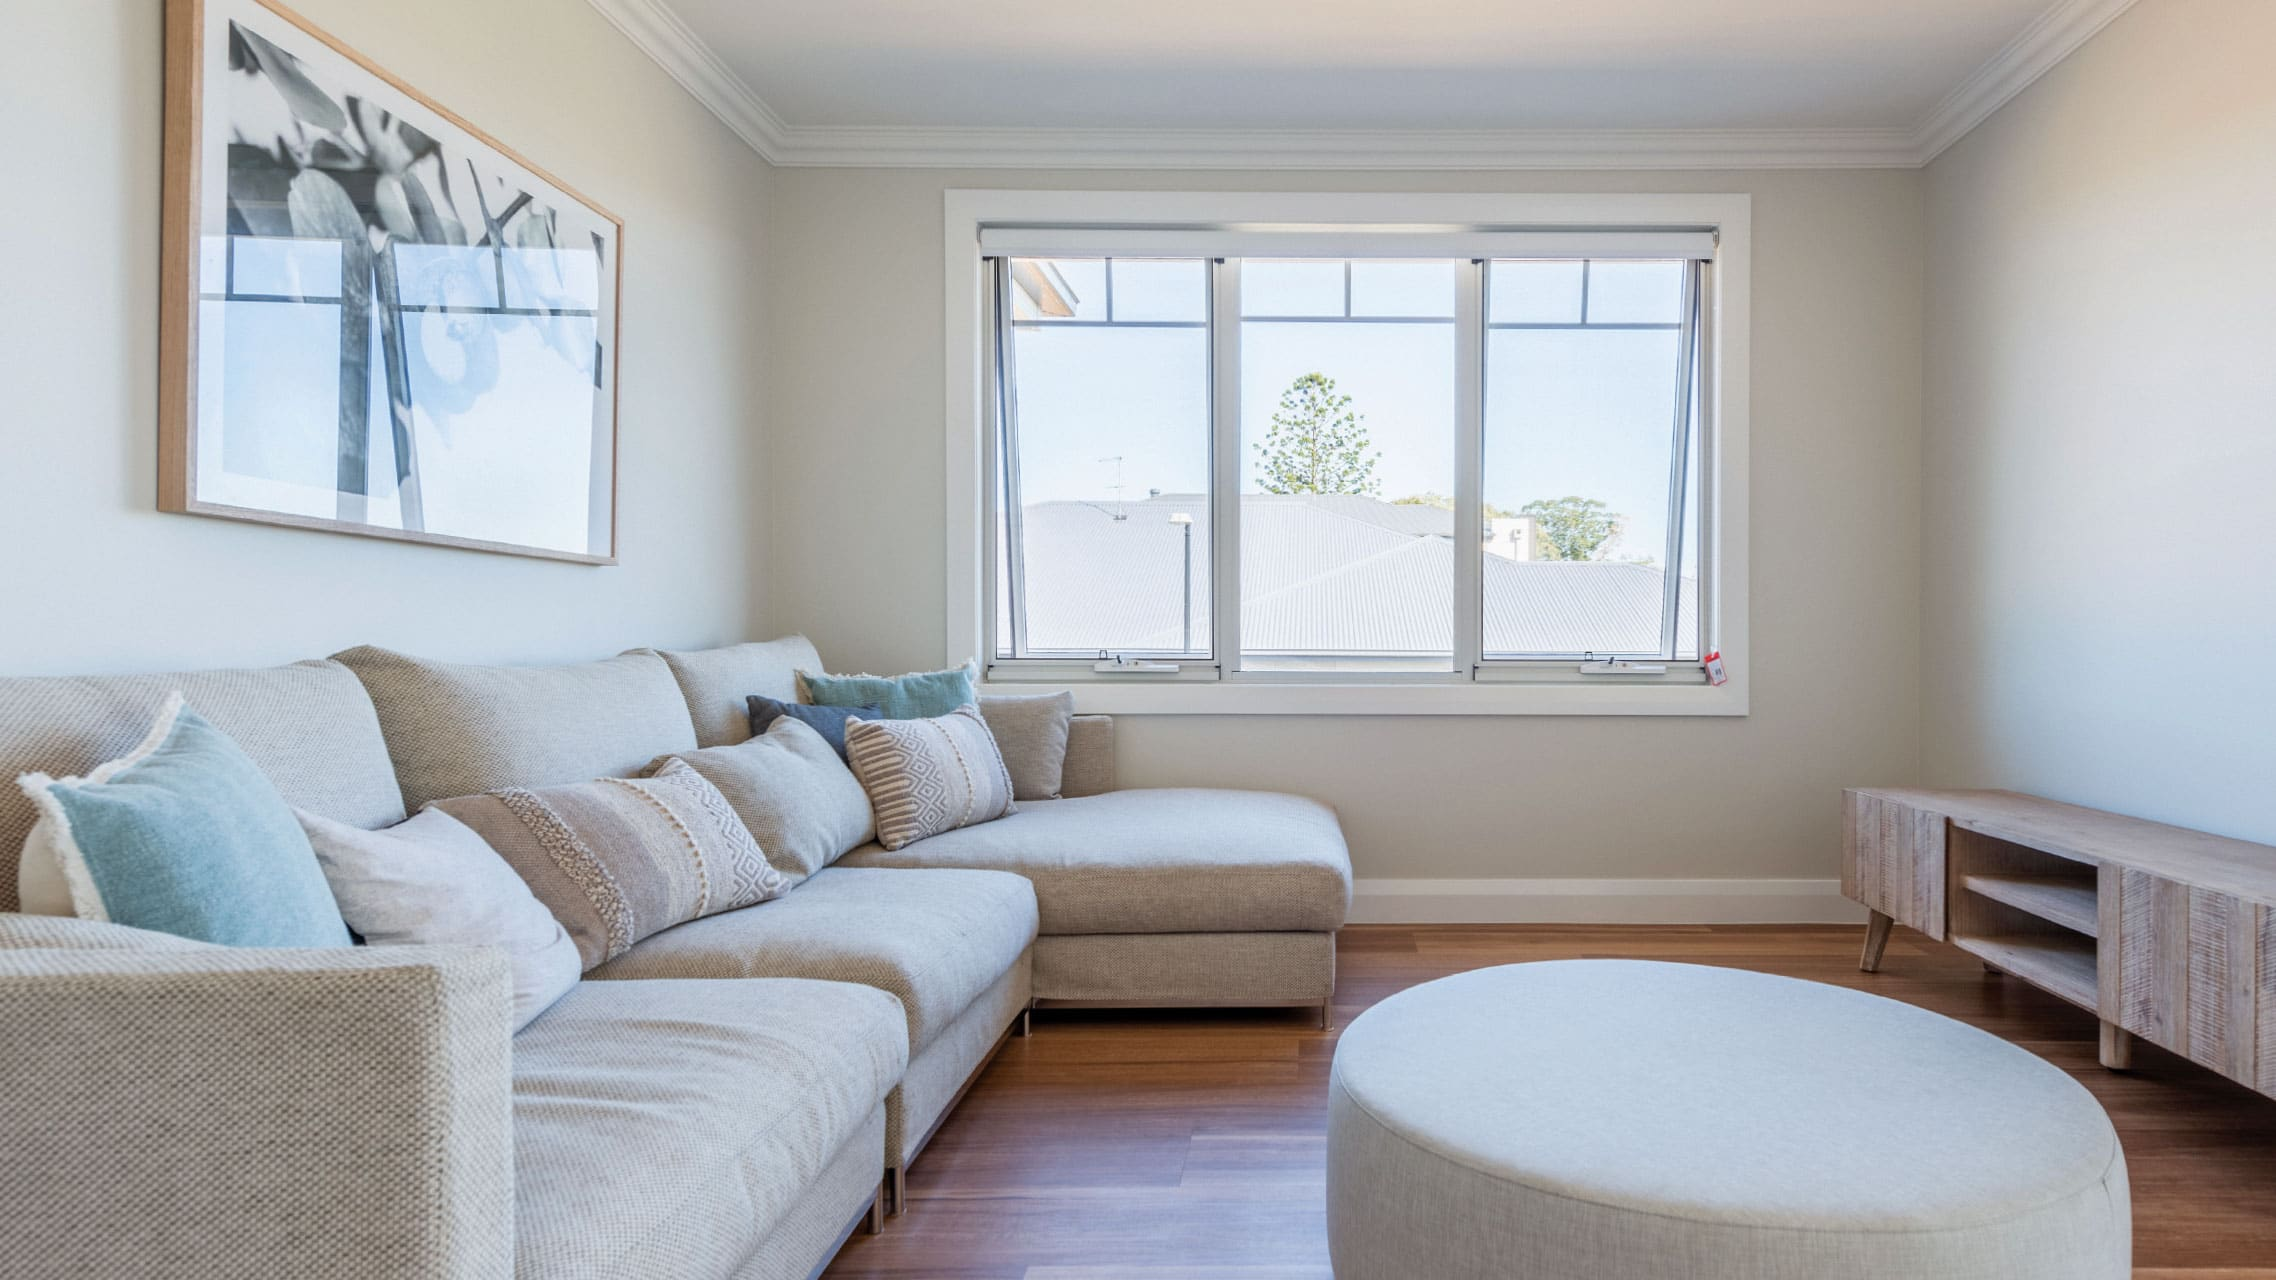 White Aluminium Awning Window in a living room